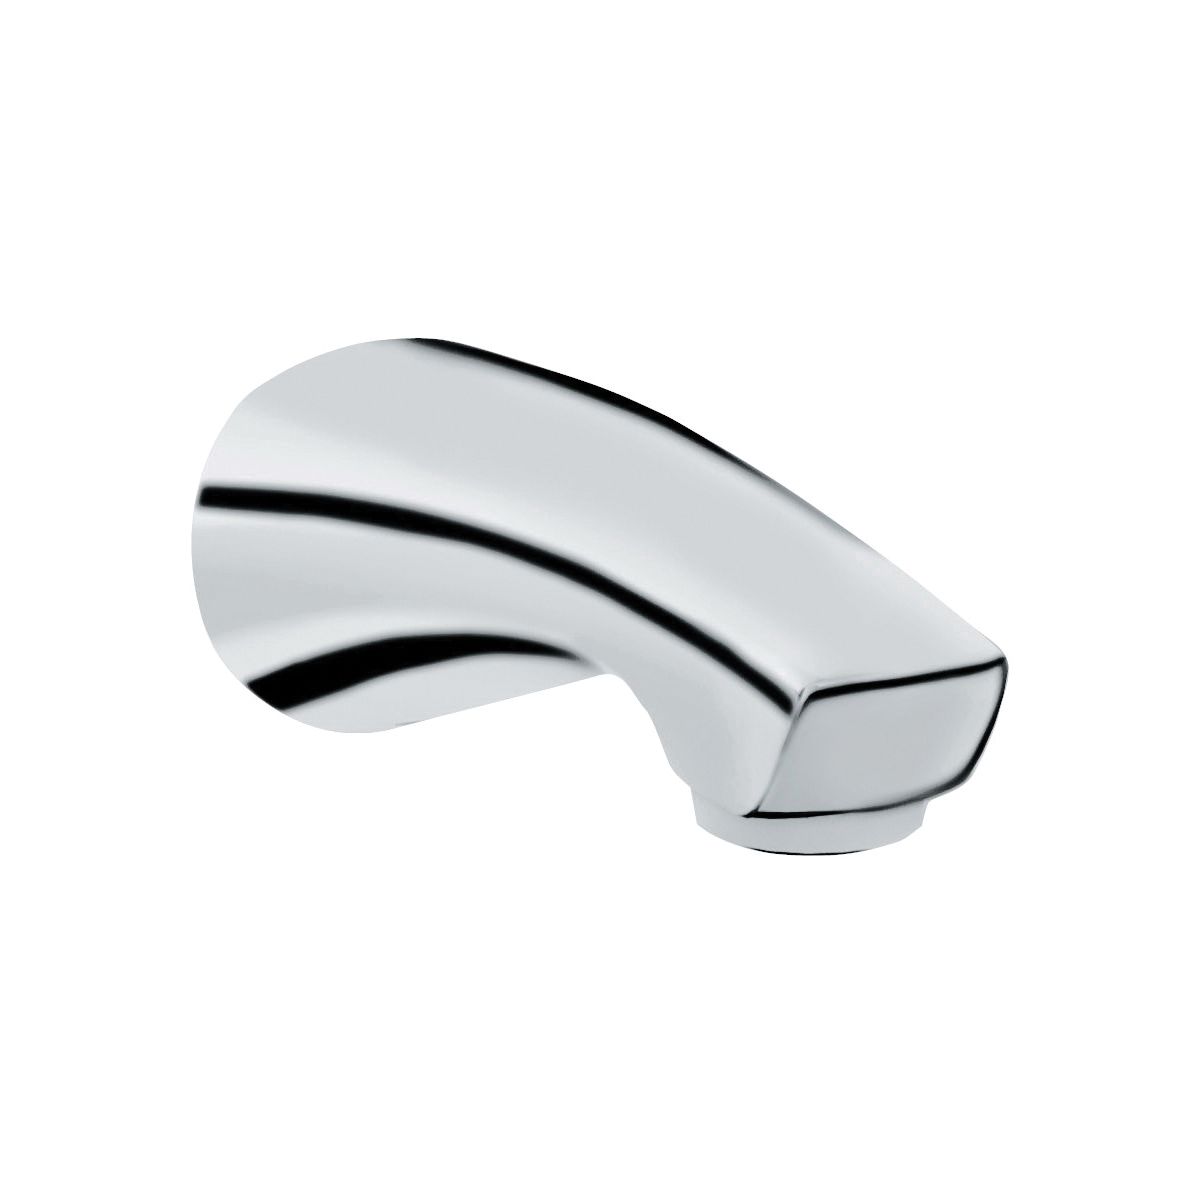 GROHE 13191000 Arden Tub Spout, StarLight® Chrome, Import